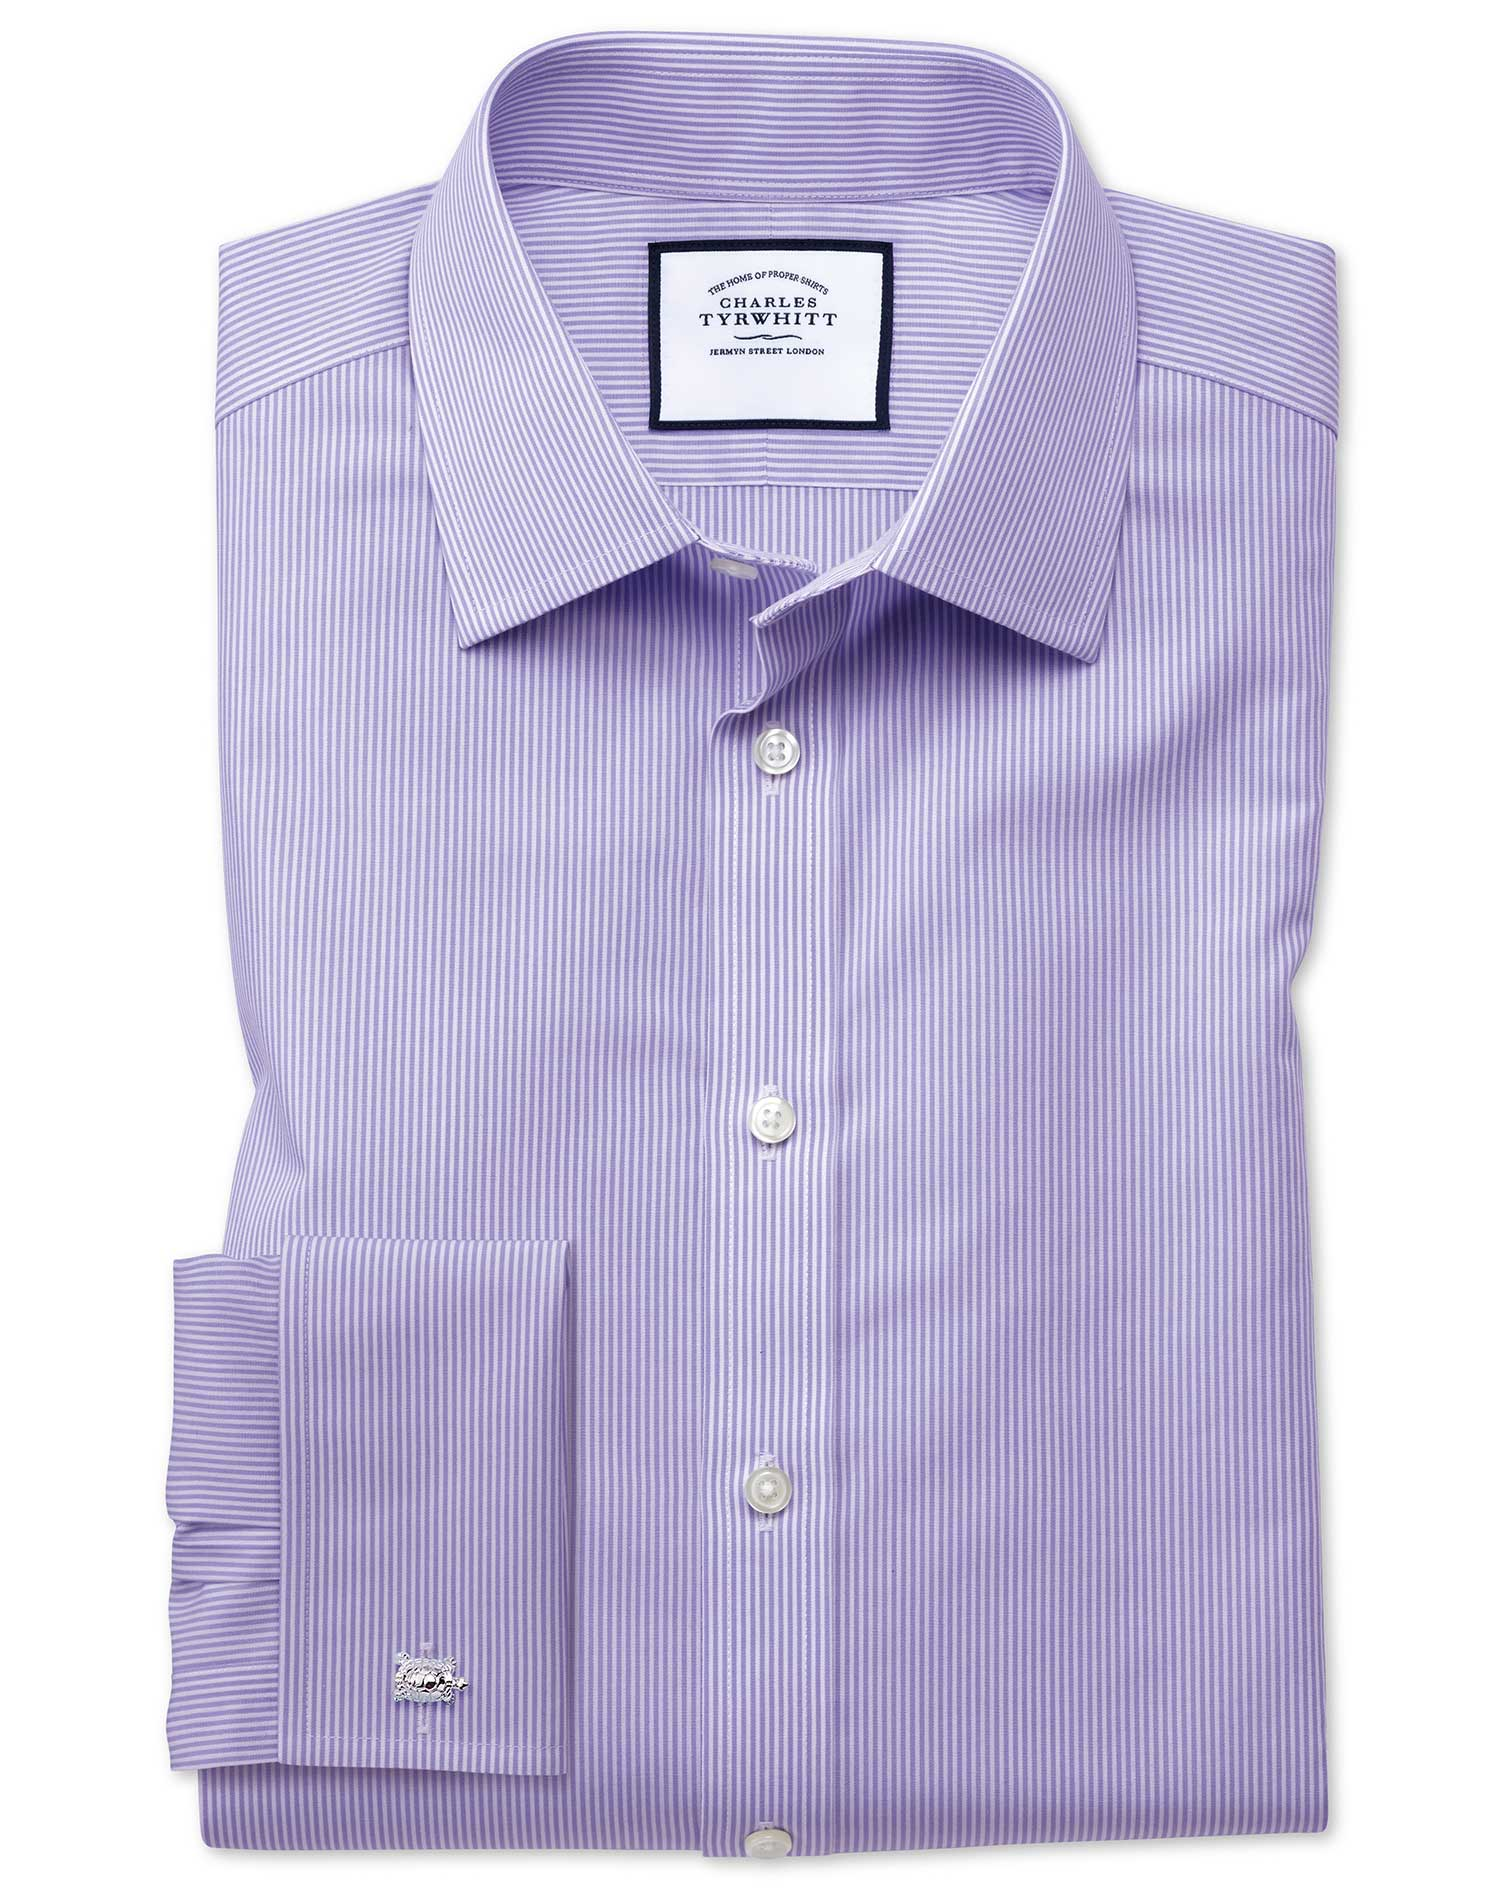 Slim Fit Non-Iron Bengal Stripe Lilac Cotton Formal Shirt Double Cuff Size 16/33 by Charles Tyrwhitt